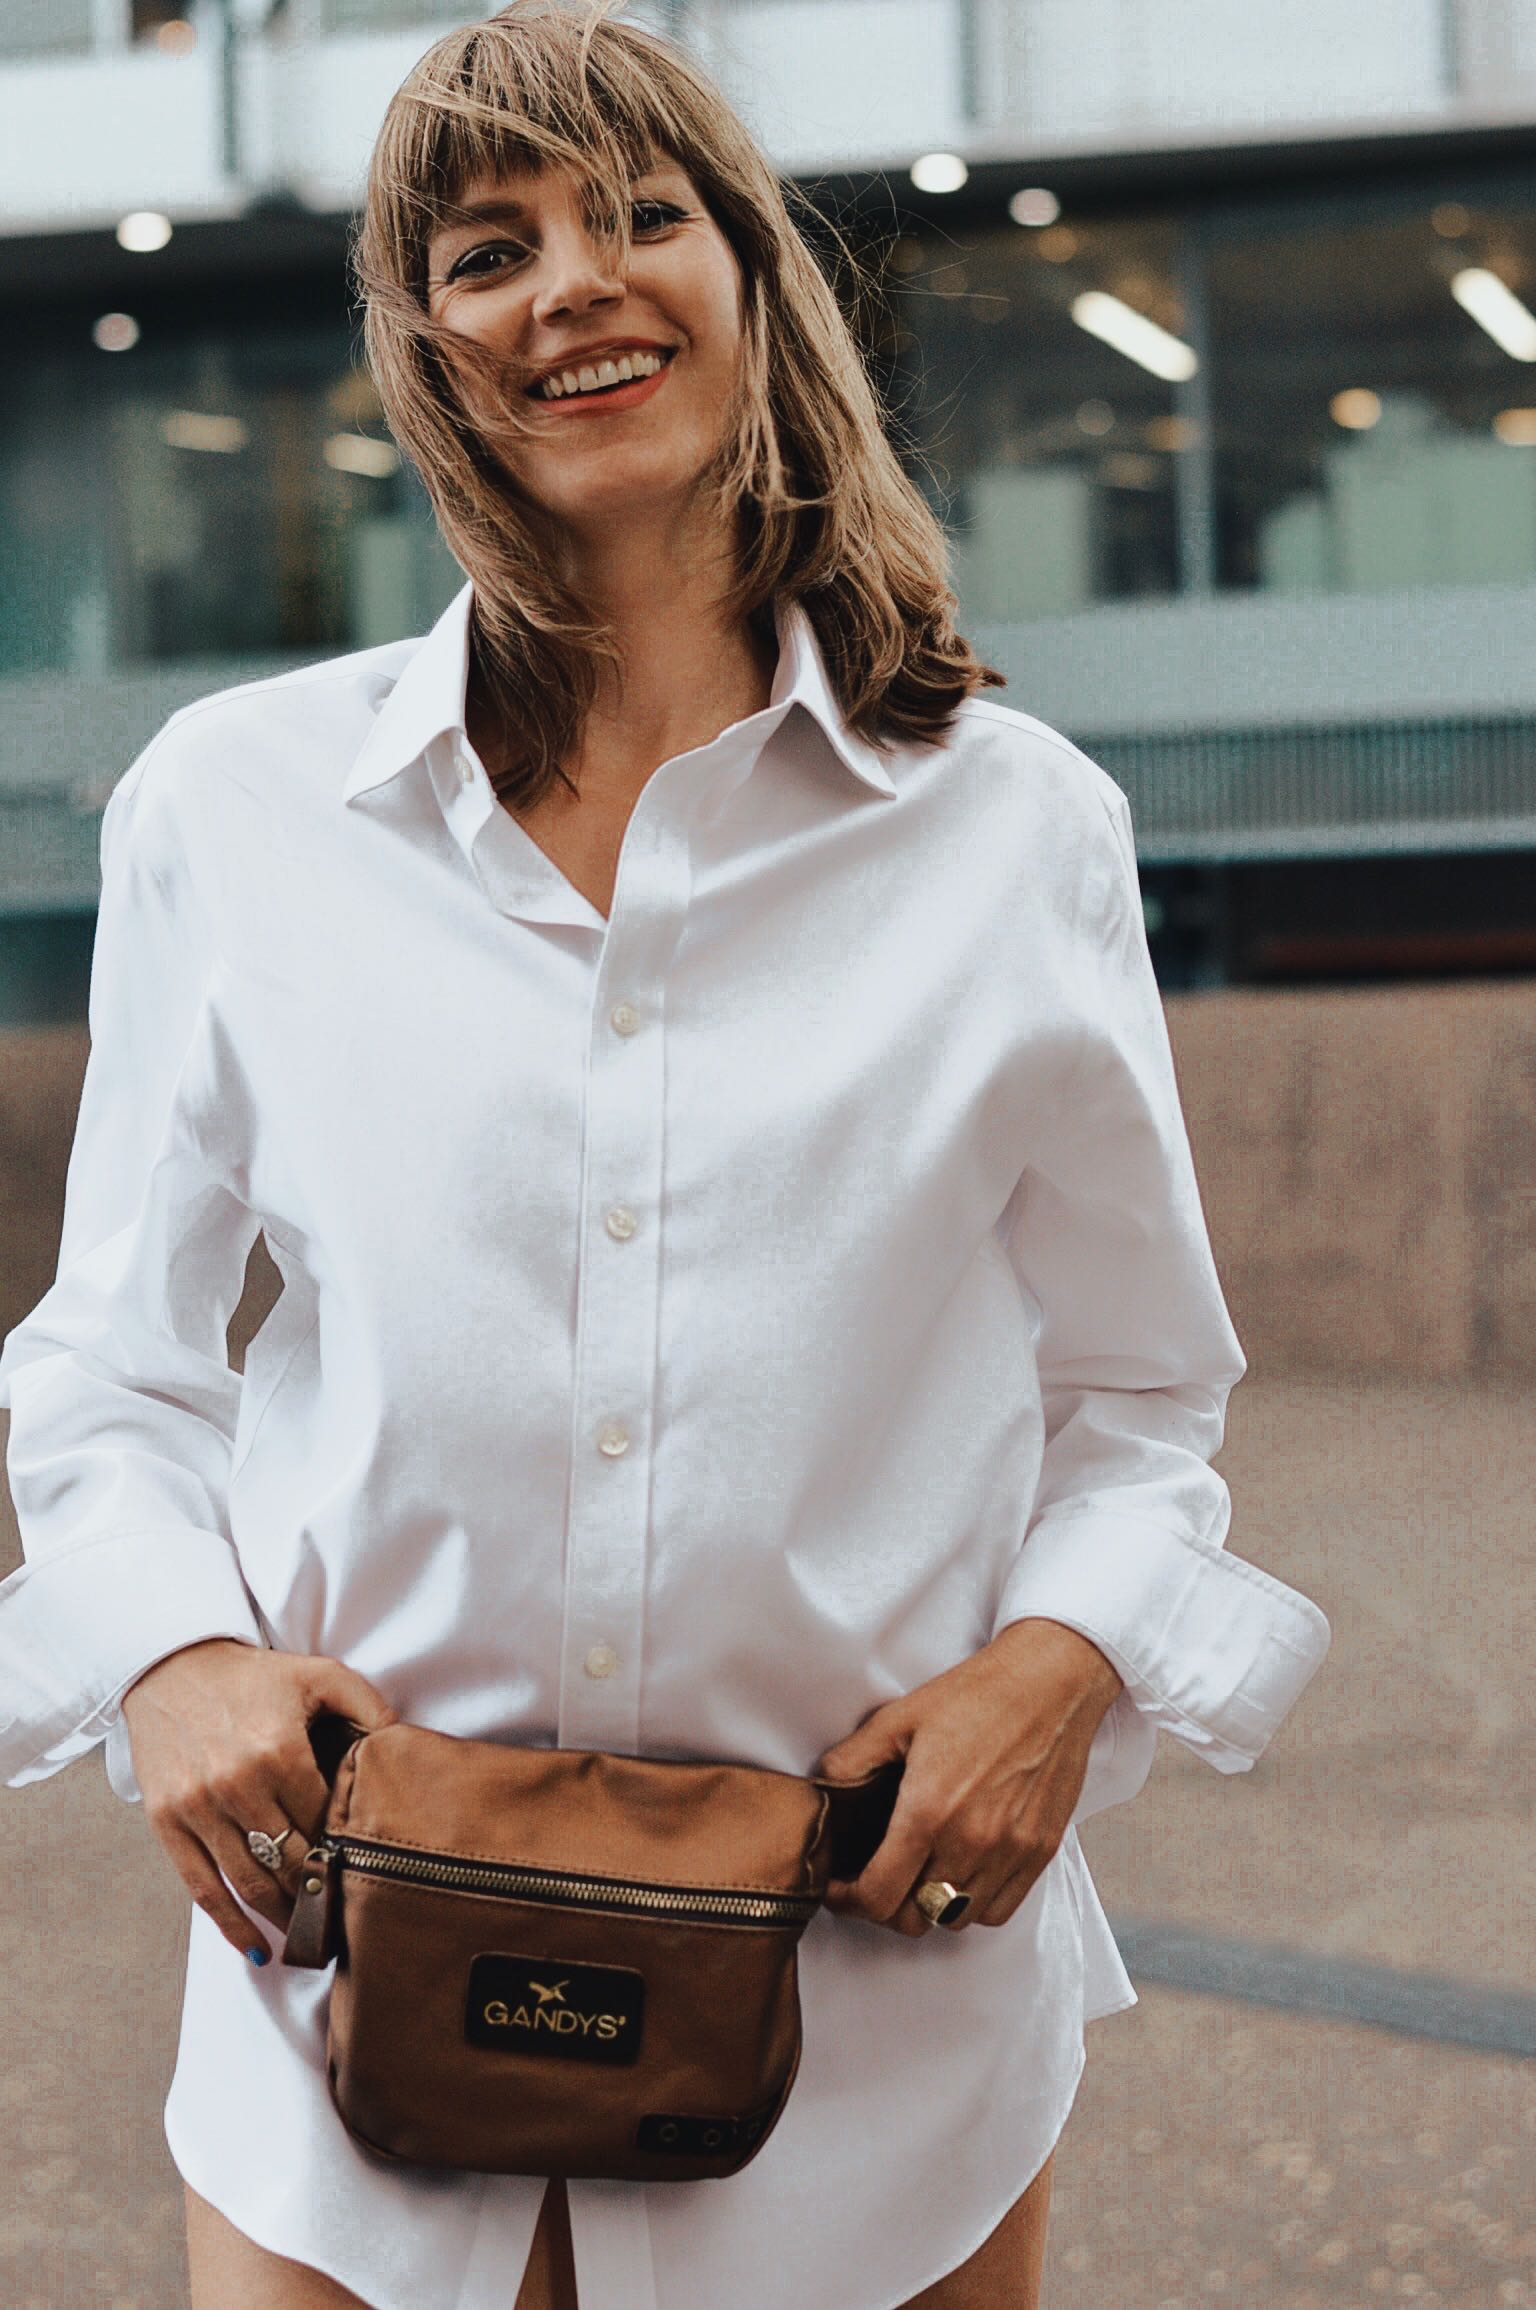 Gandy's is ethical and sustainable brand built for travel